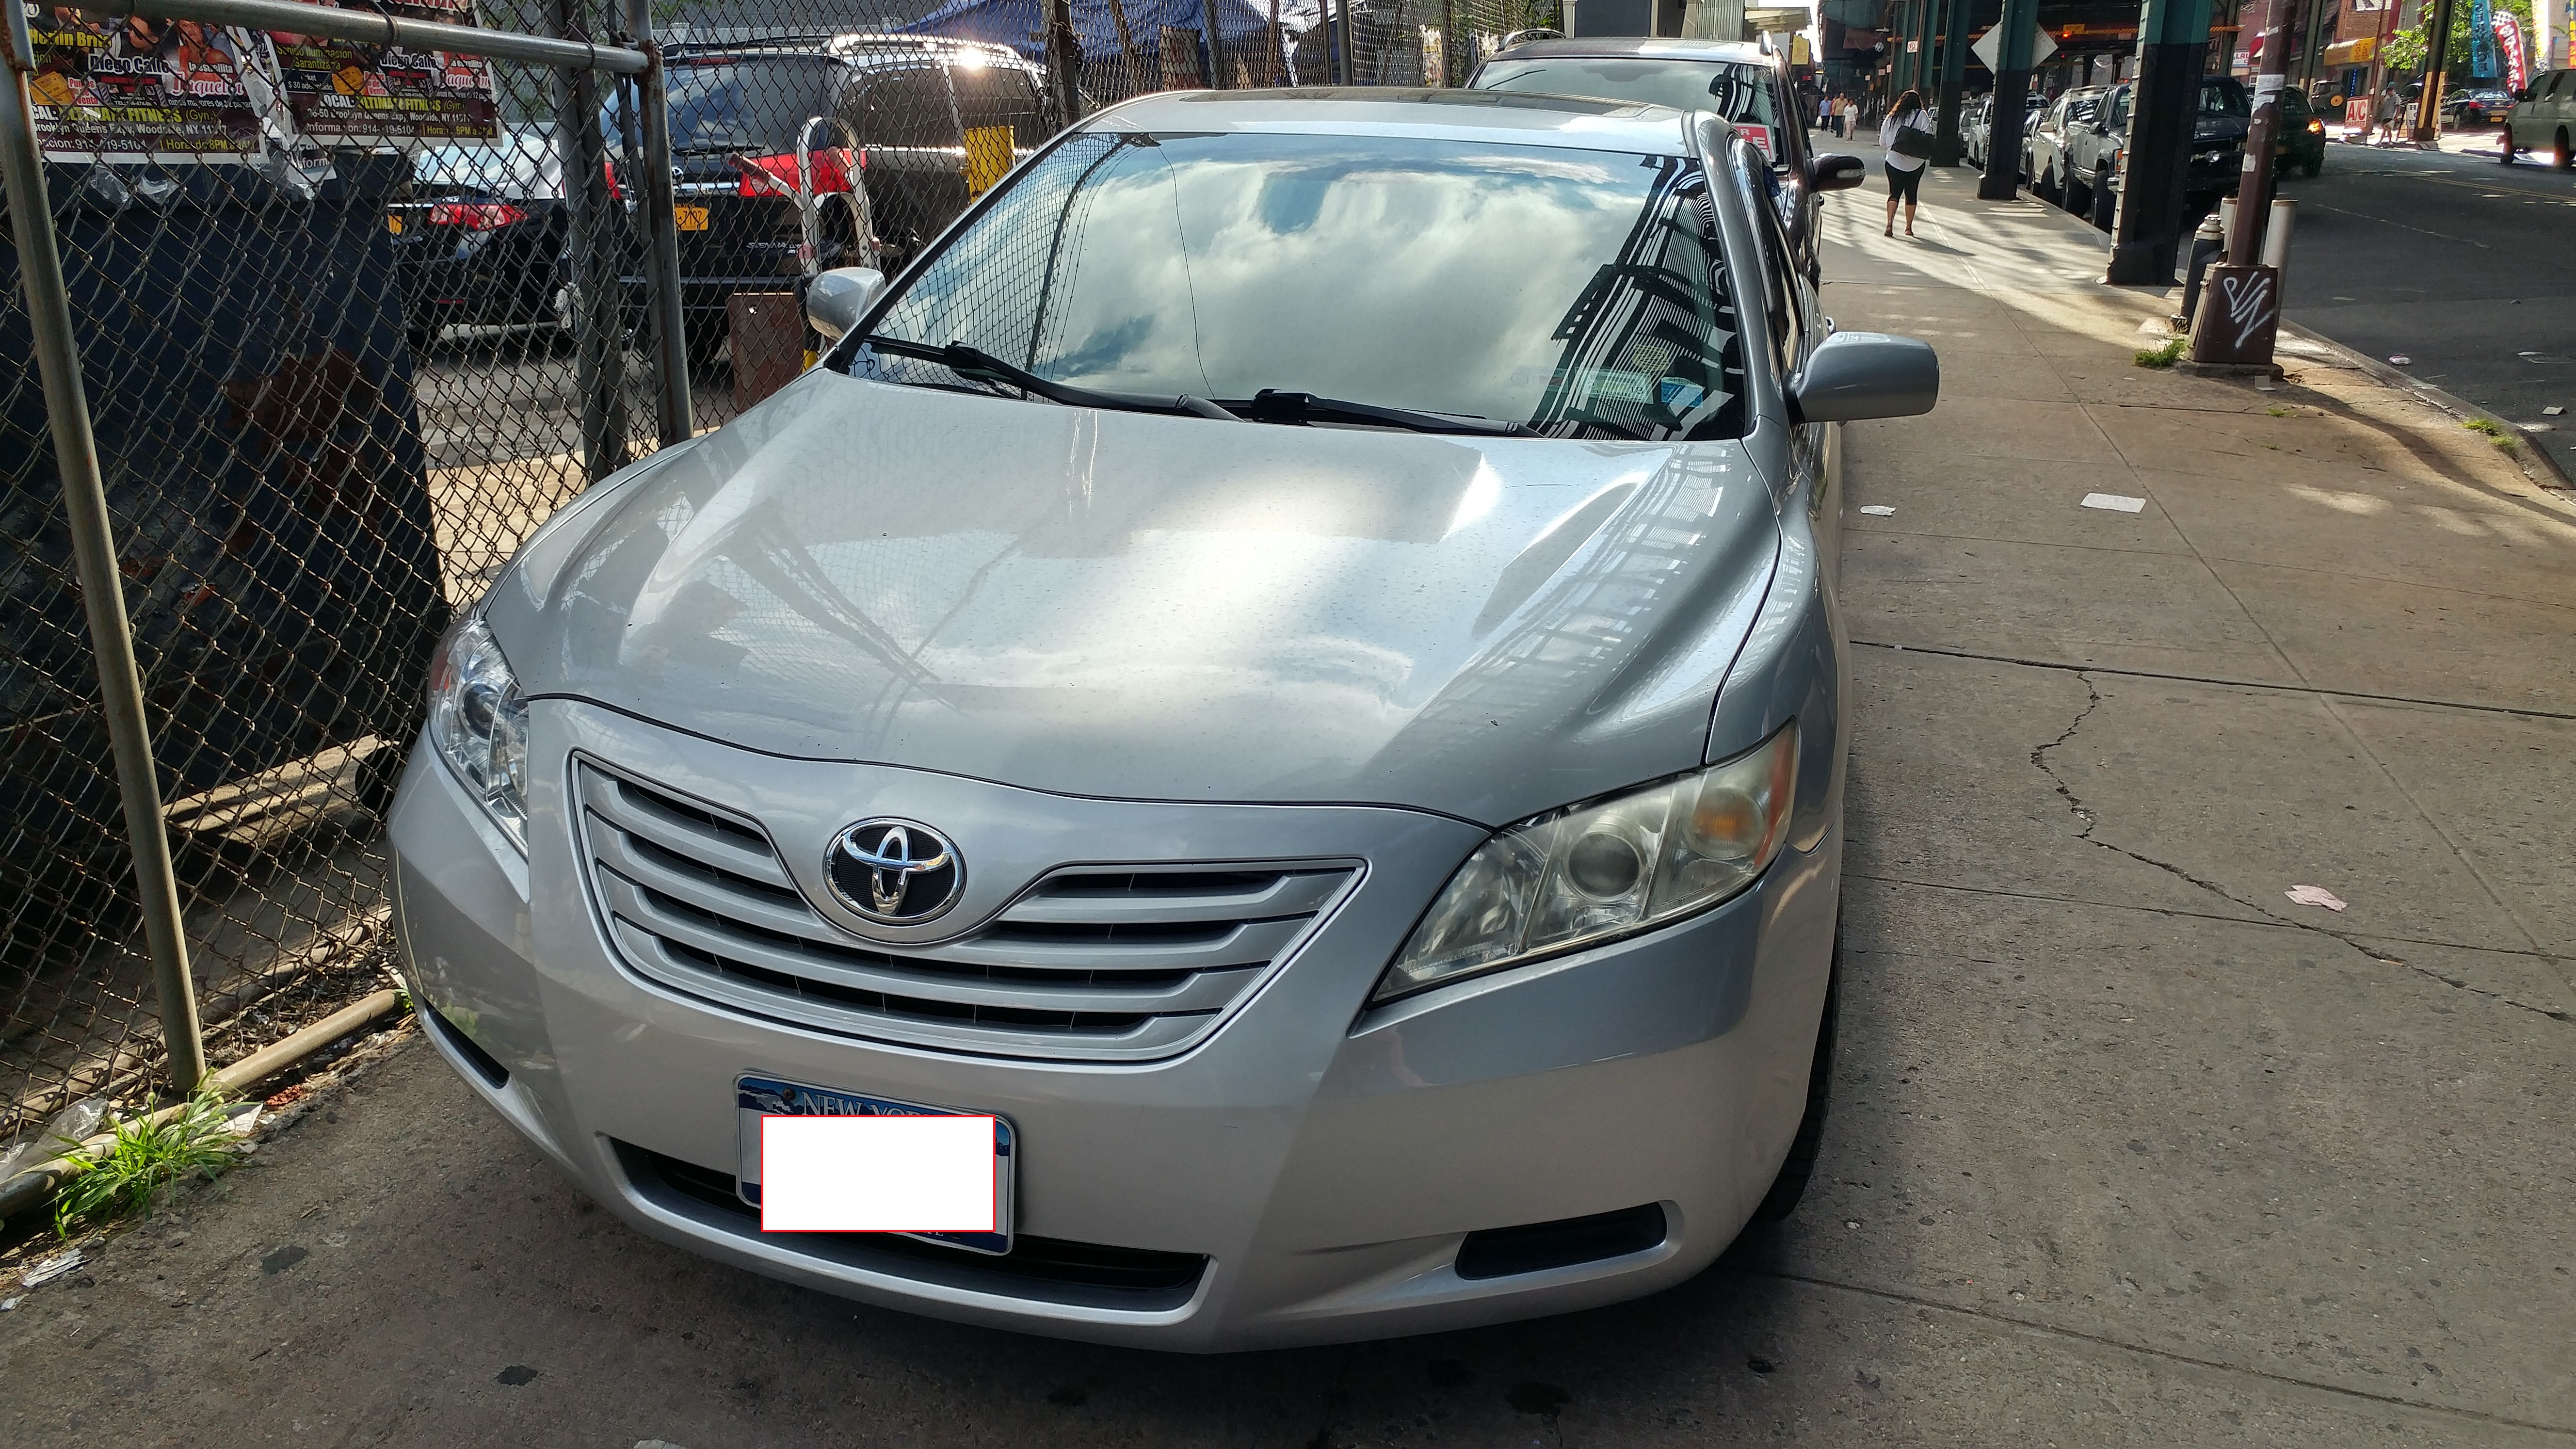 5 800 2008 toyota camry 124k miles heykorean 39 hey market 39 worldwide marketplace. Black Bedroom Furniture Sets. Home Design Ideas